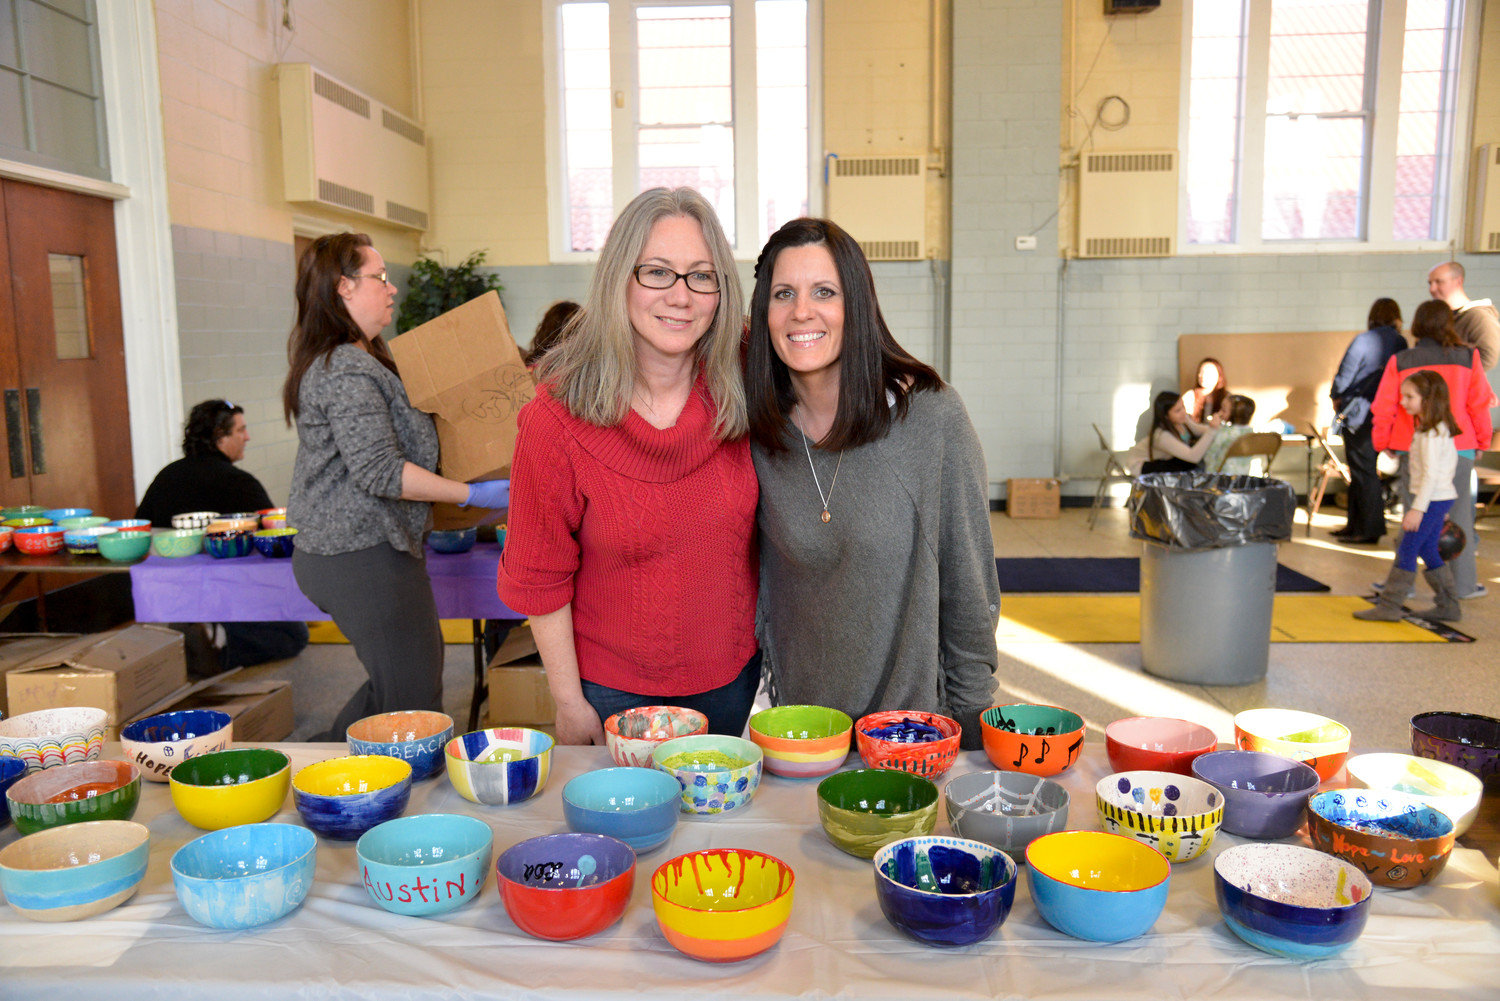 Organizers Michelle Kelly, left, and Debora Staiano at the Empty Bowls fundraiser in 2014.